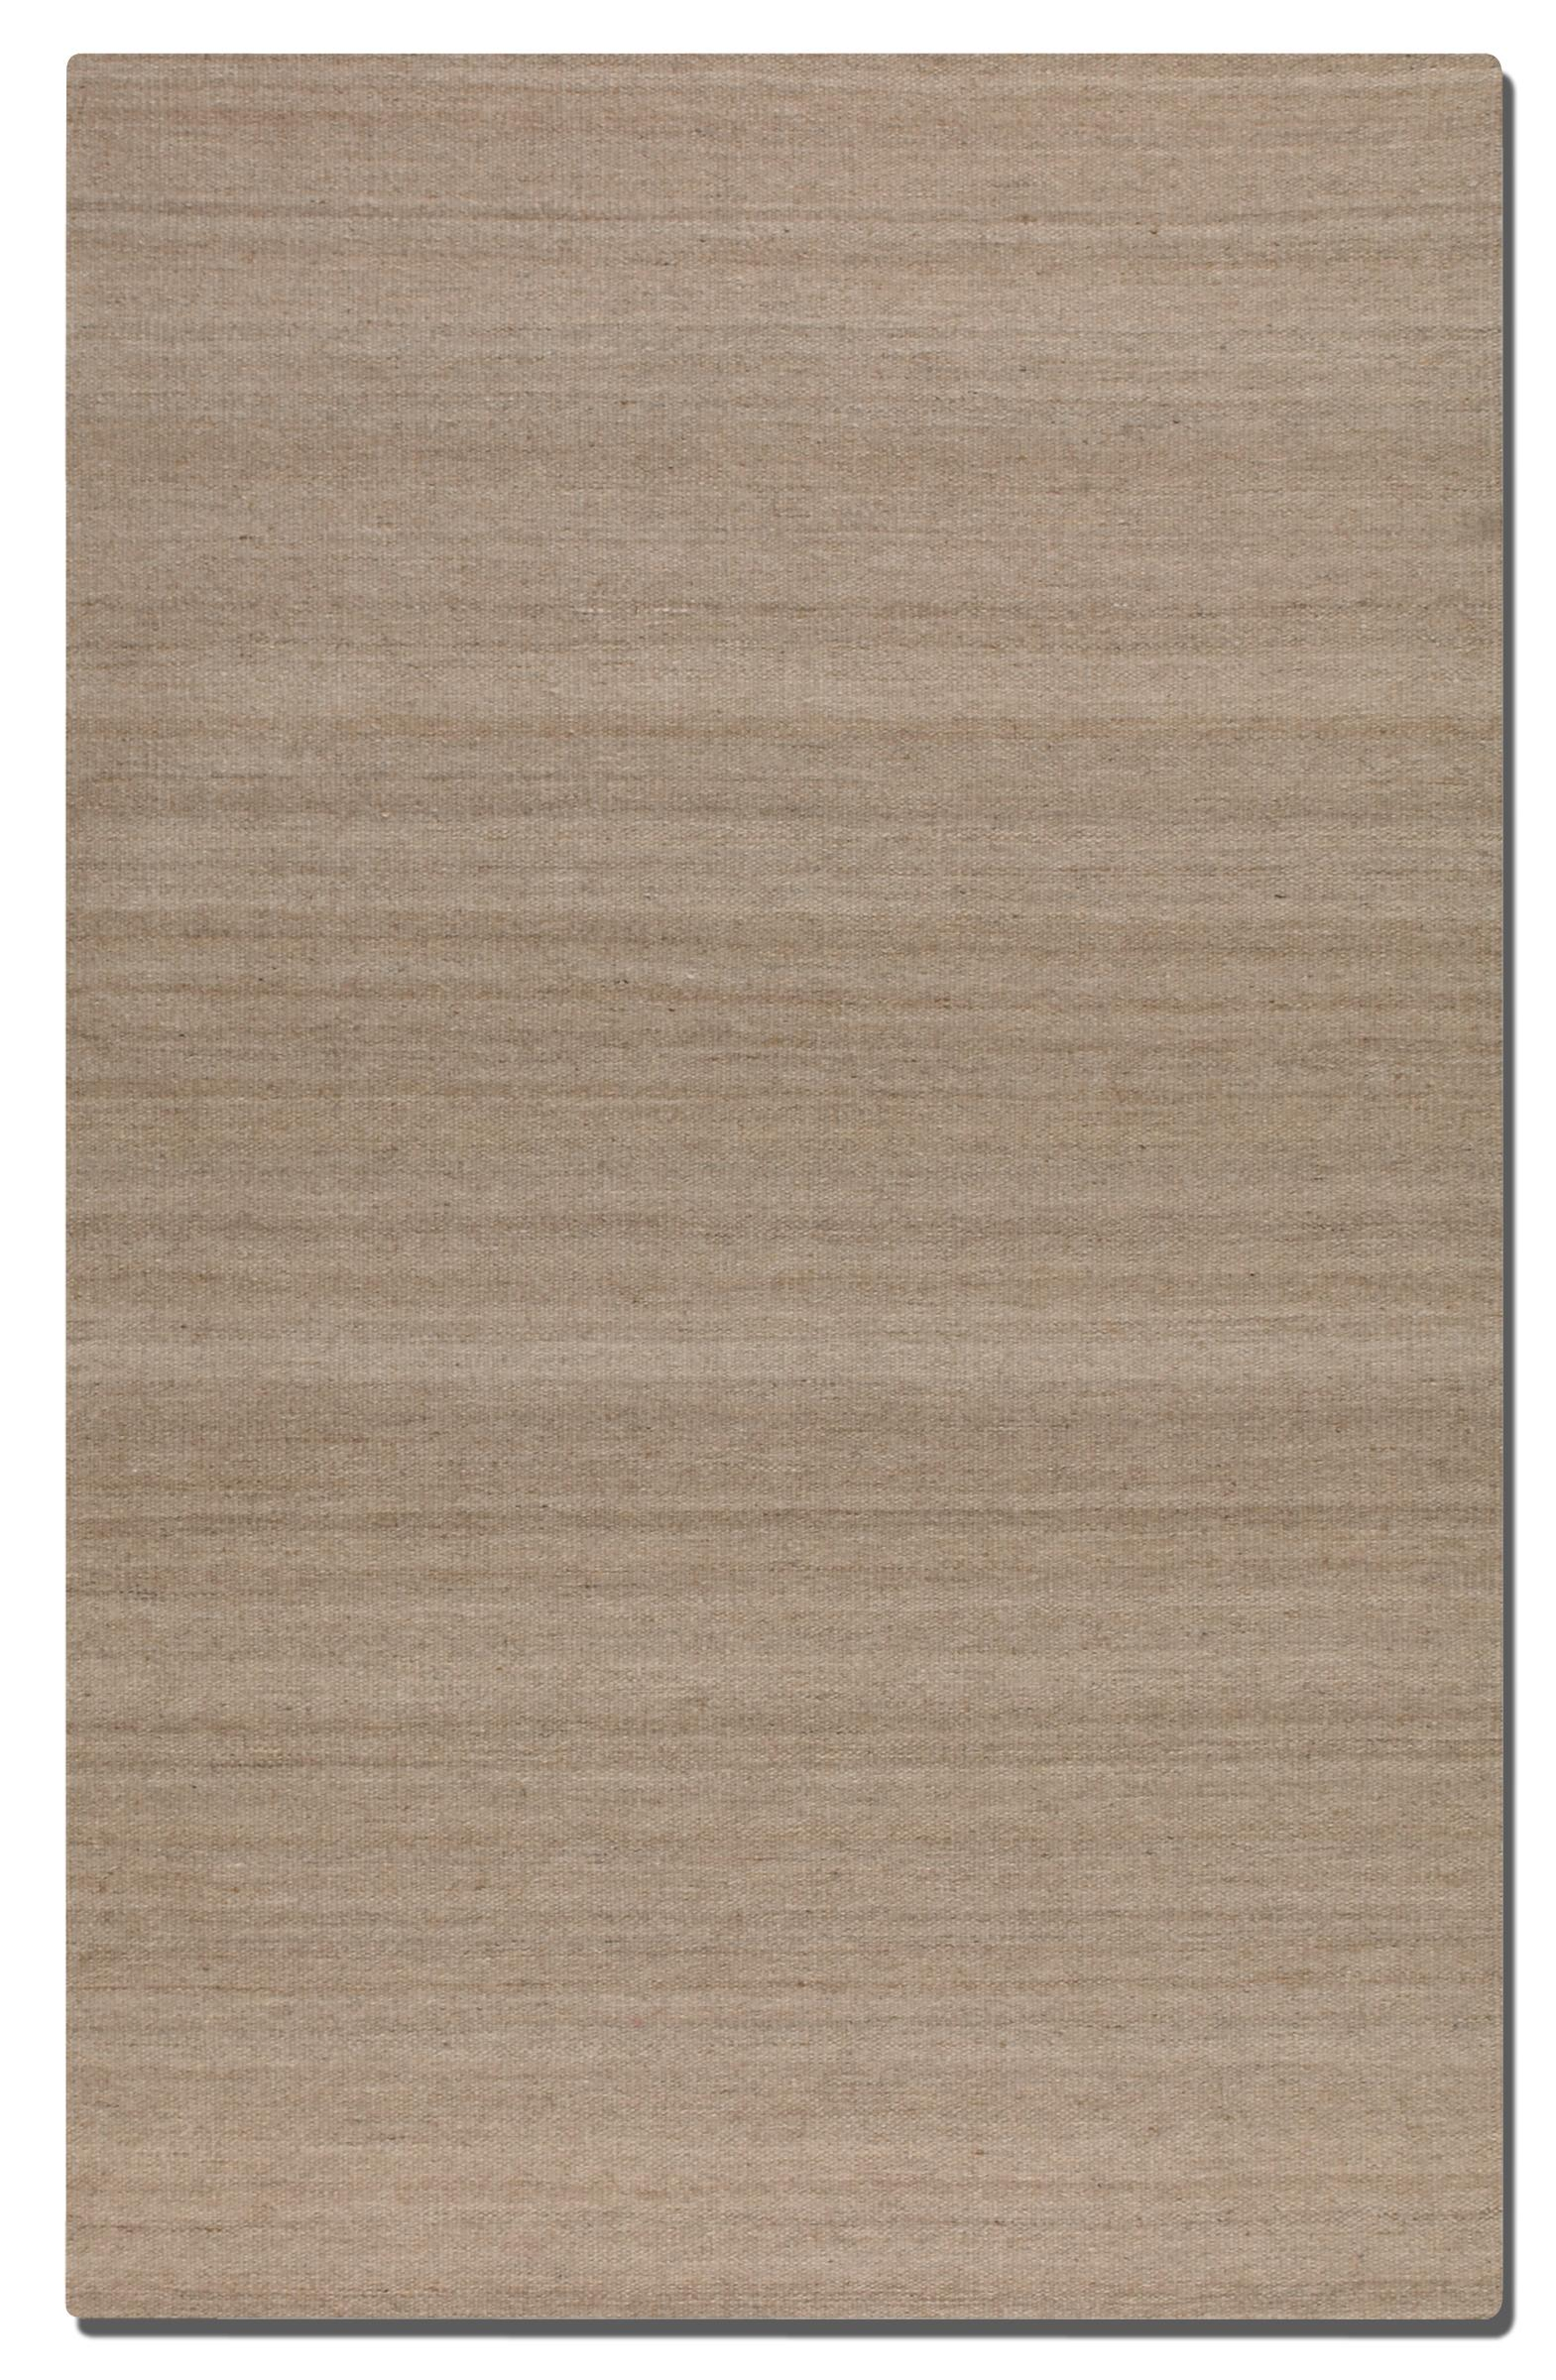 Uttermost Rugs Wellington 8 X 10  - Item Number: 71006-8